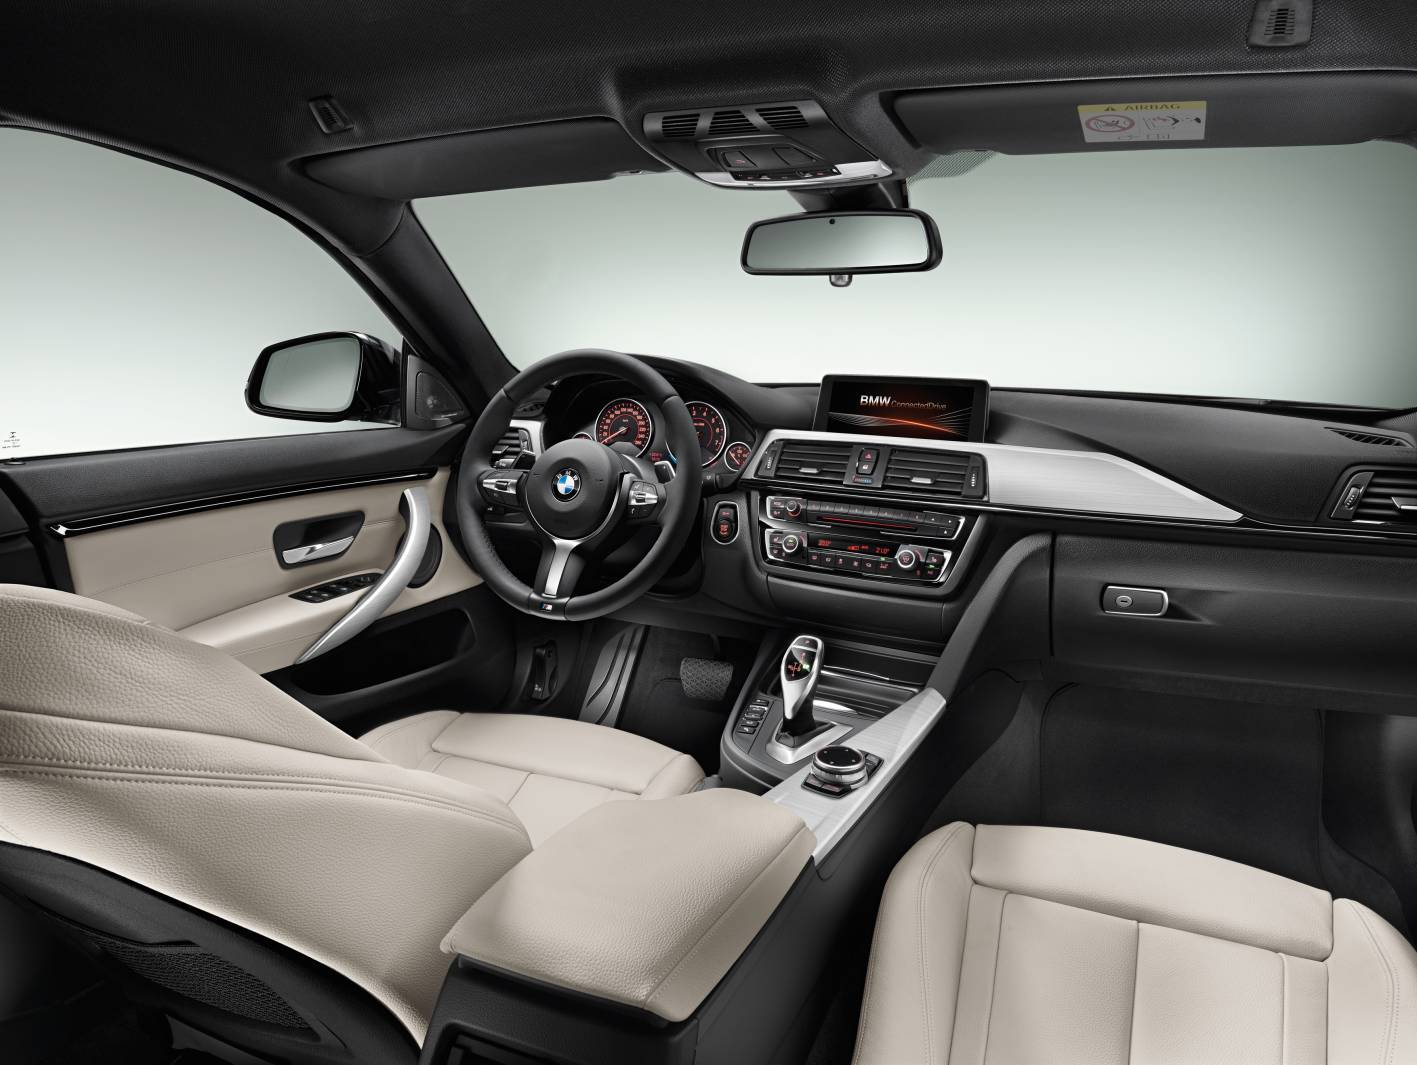 2014 BMW 4 Series Gran Coupe Interior